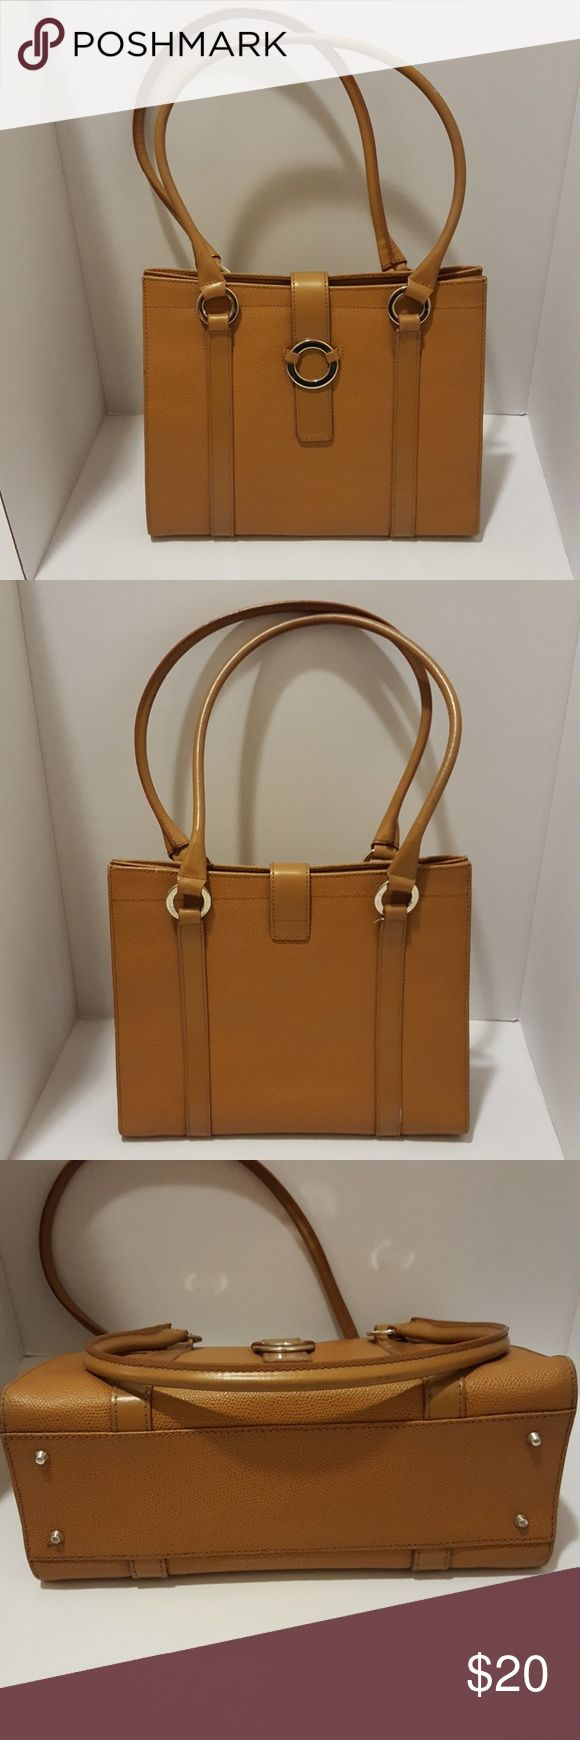 Nordstrom Leather Handbag Purse Nordstrom Brown Leather Purse Made in Italy. Like New, used once or twice. Some wear on handles from age and storage as shown in last picture. Nordstrom Bags Shoulder Bags